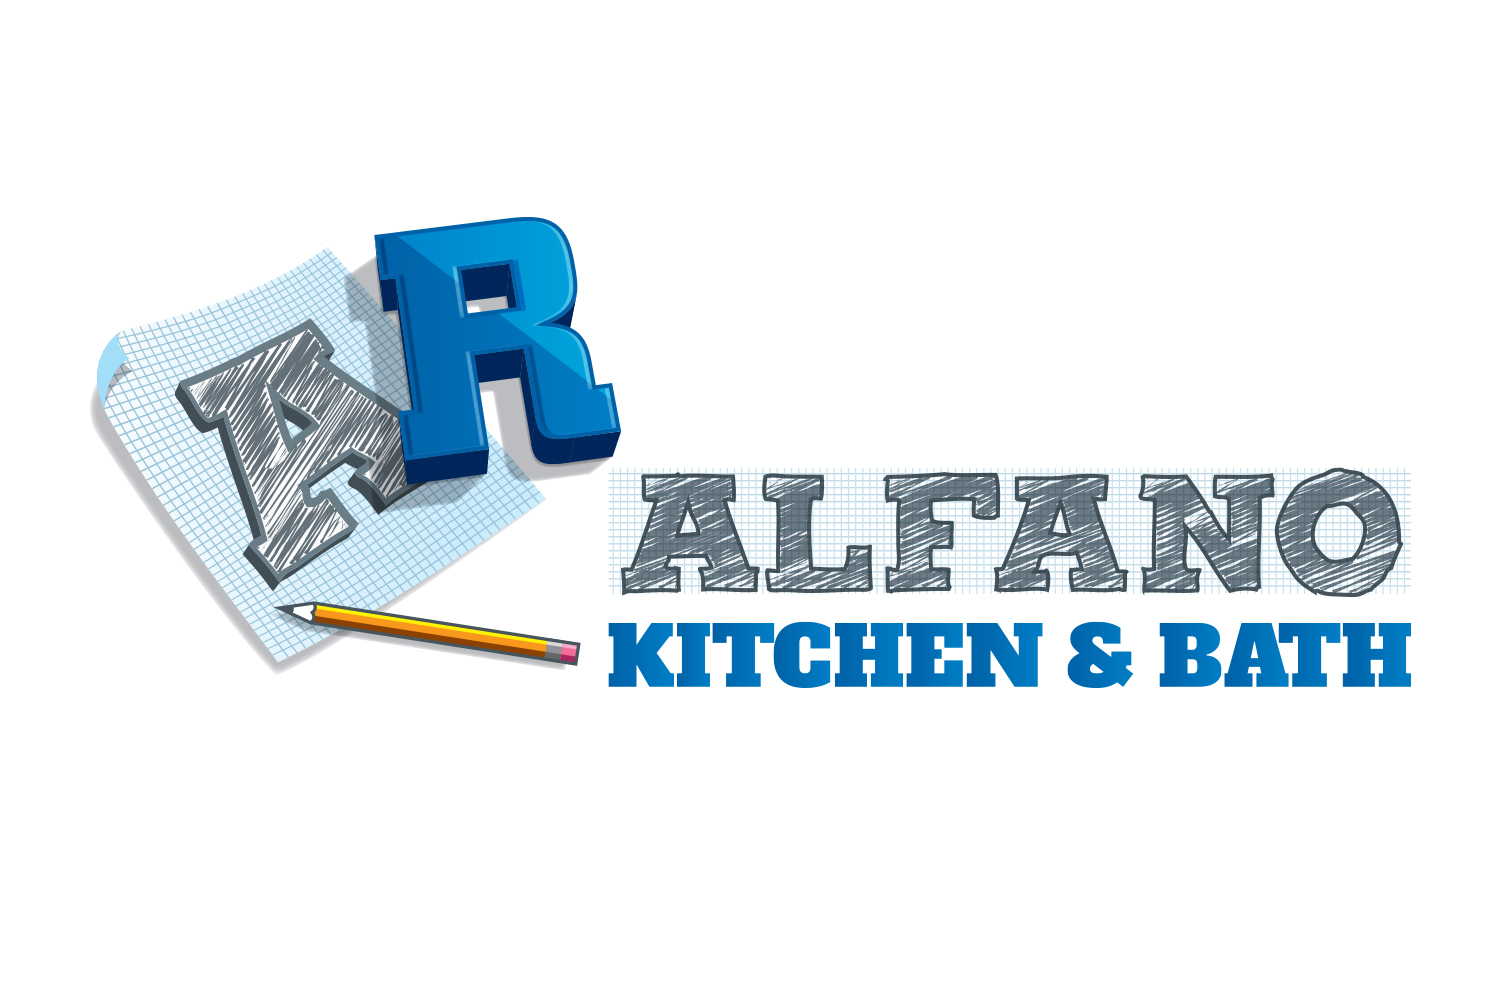 Alfano Kitchen & Bath